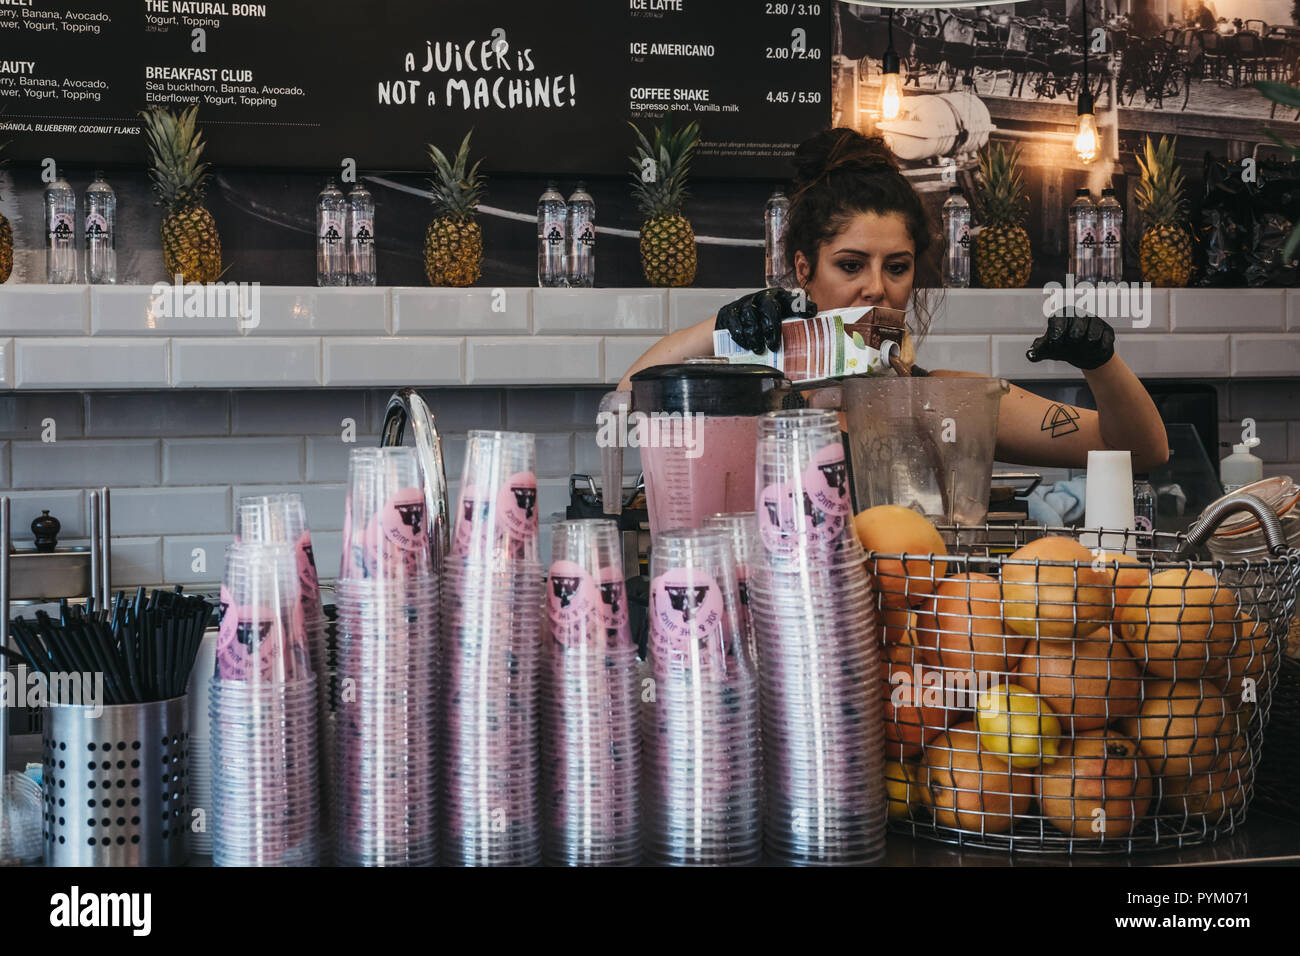 Employee making juice inside Joe & The Juice cafe in Richmond, London. Joe & The Juice is a chain of juice bars and coffee shops. - Stock Image